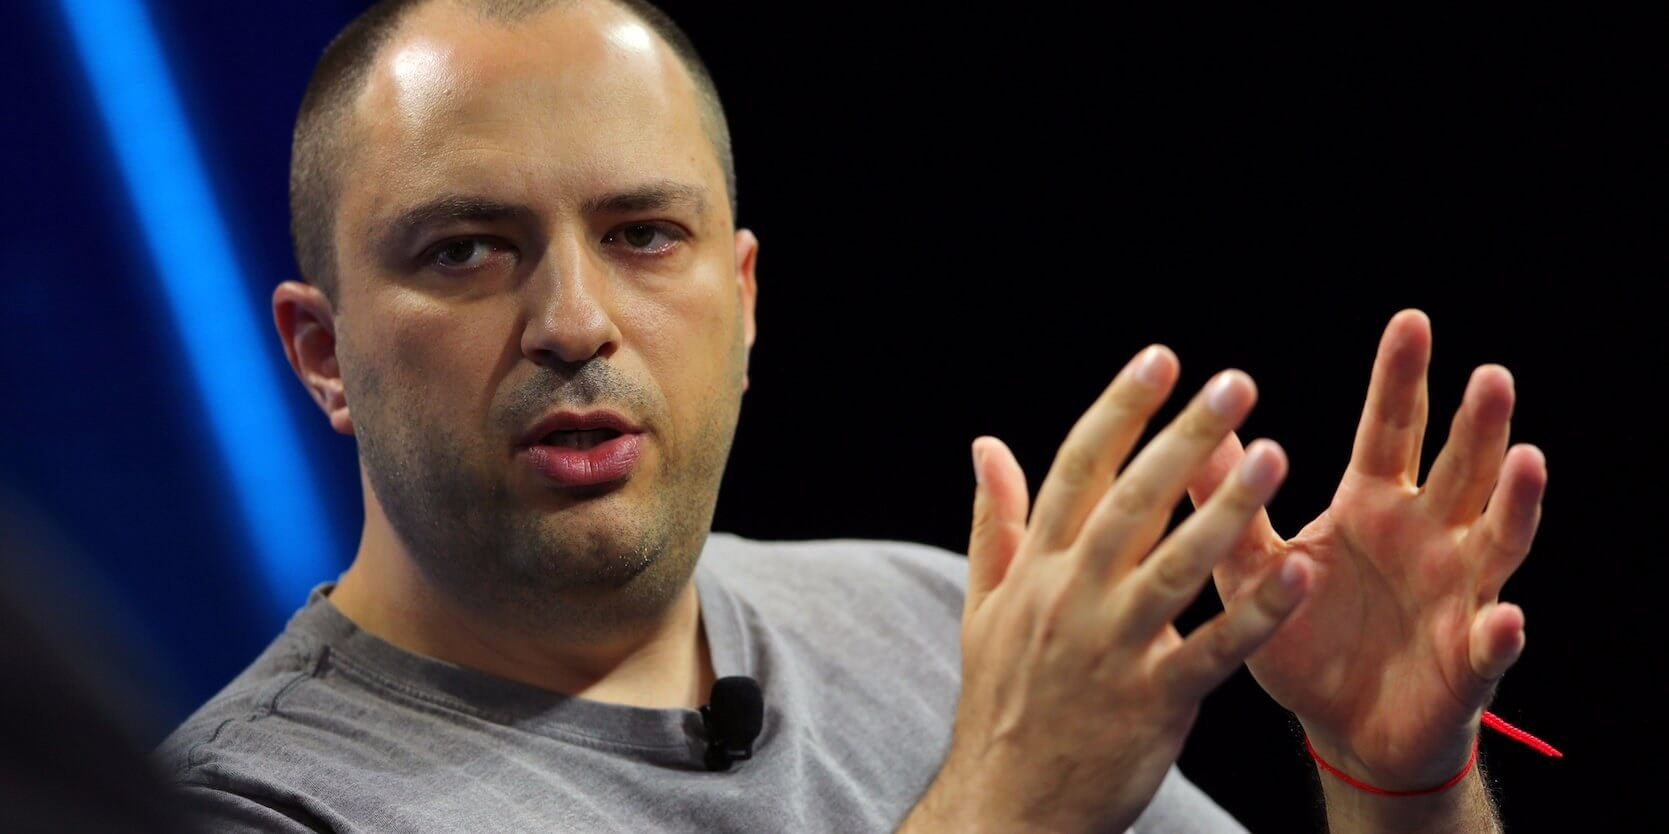 WhatsApp CEO Jan Koum to quit amid reported privacy disputes with Facebook